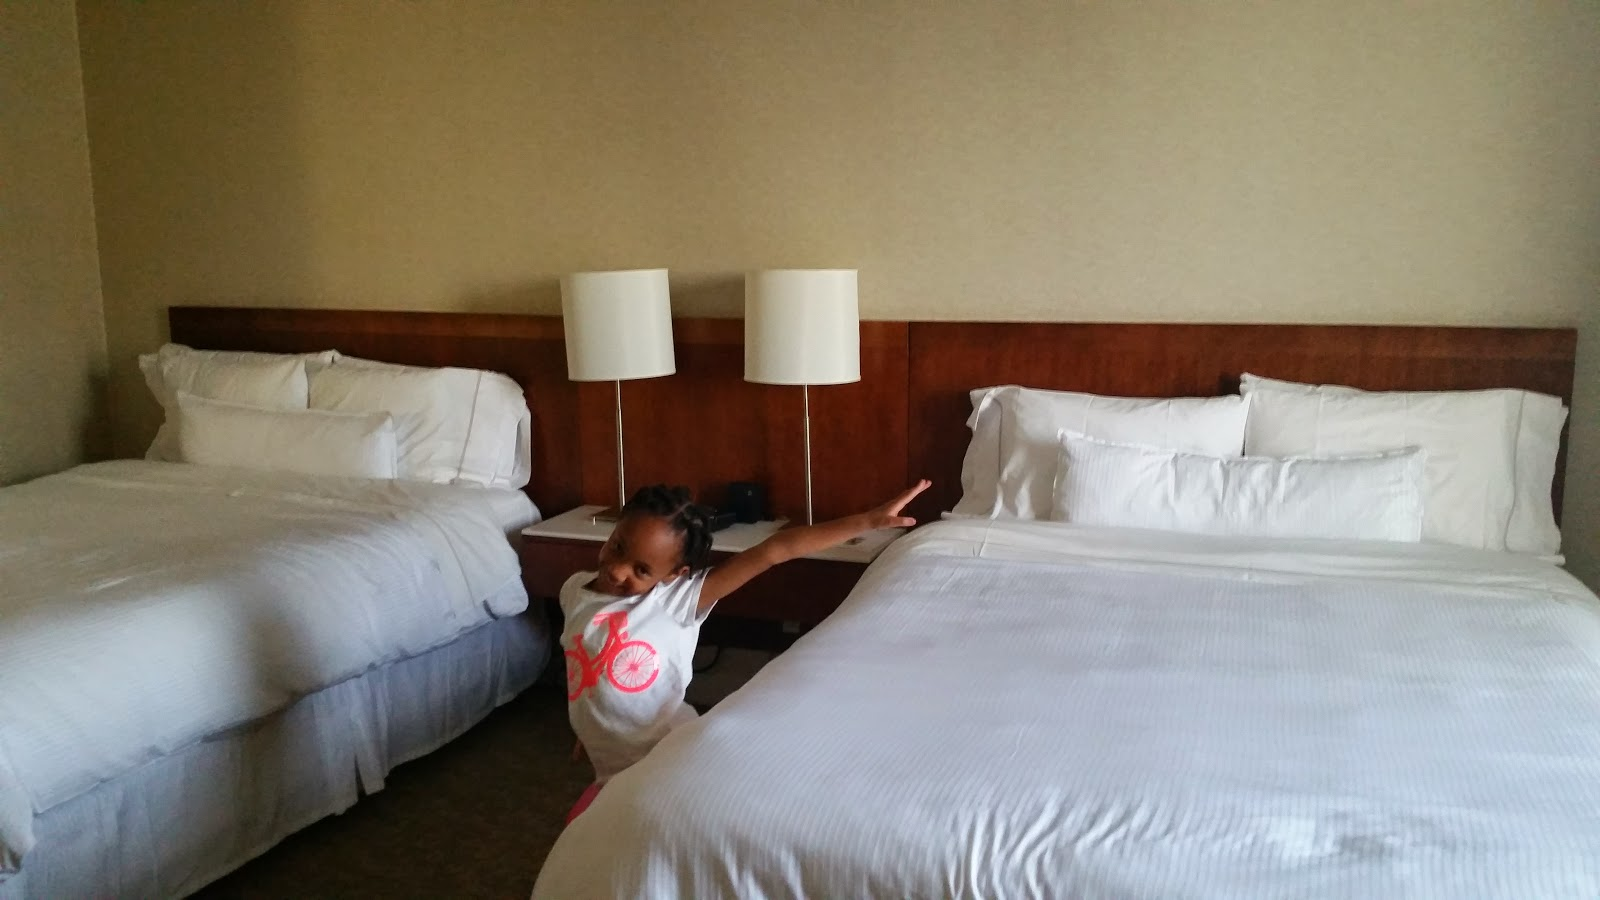 My Epic Family Road Trip Vacation! #RoadTrip #TheWestin via ProductReviewMom.com